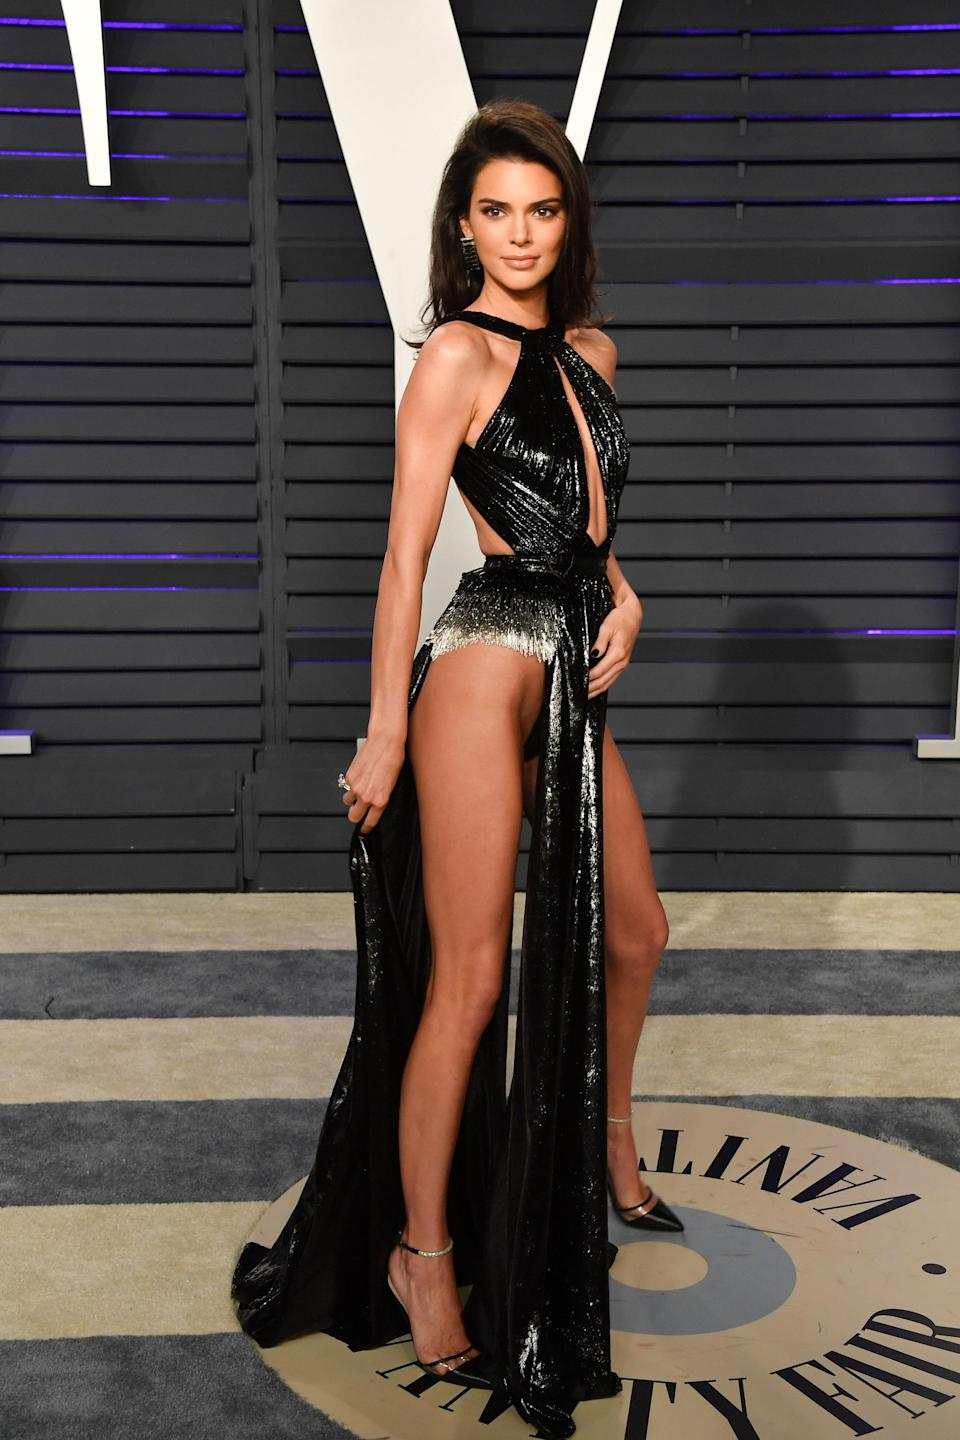 Kendall Jenner Wears Revealing Dress To Oscars After Party